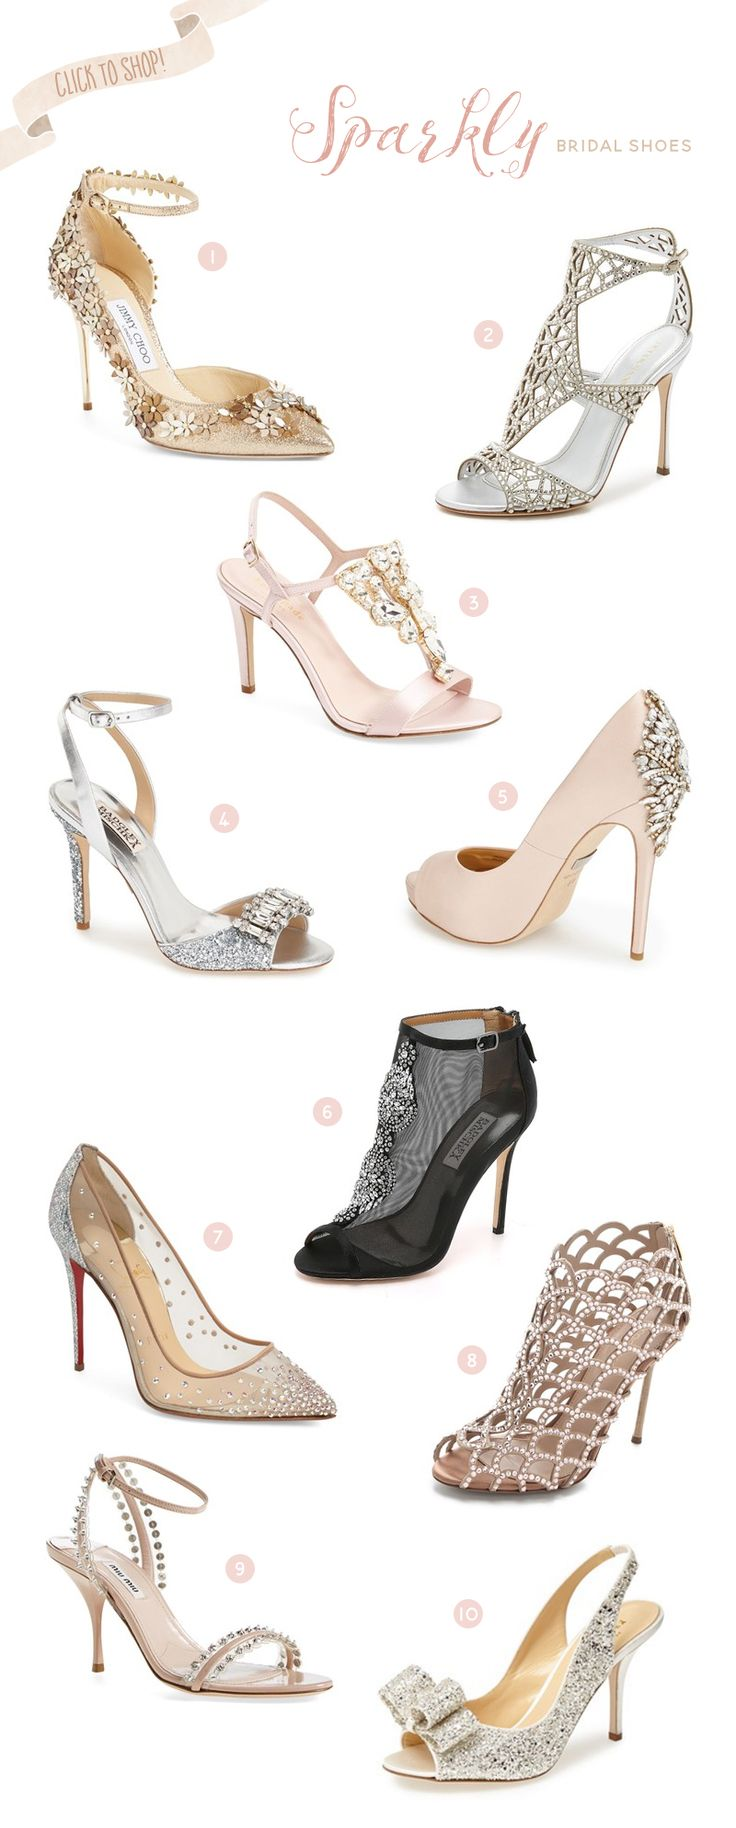 Every girl sparkles in their own way, and the best way to unleash your inner sparkle on the wedding day? Wedding Shoes! We're head-over-sparkly-heels in love with these absolutely stunning bridal shoes we're about to introduce! Get ready to shop and say, here comes the stylish bride! JavaScript is currently disabled in this browser. …